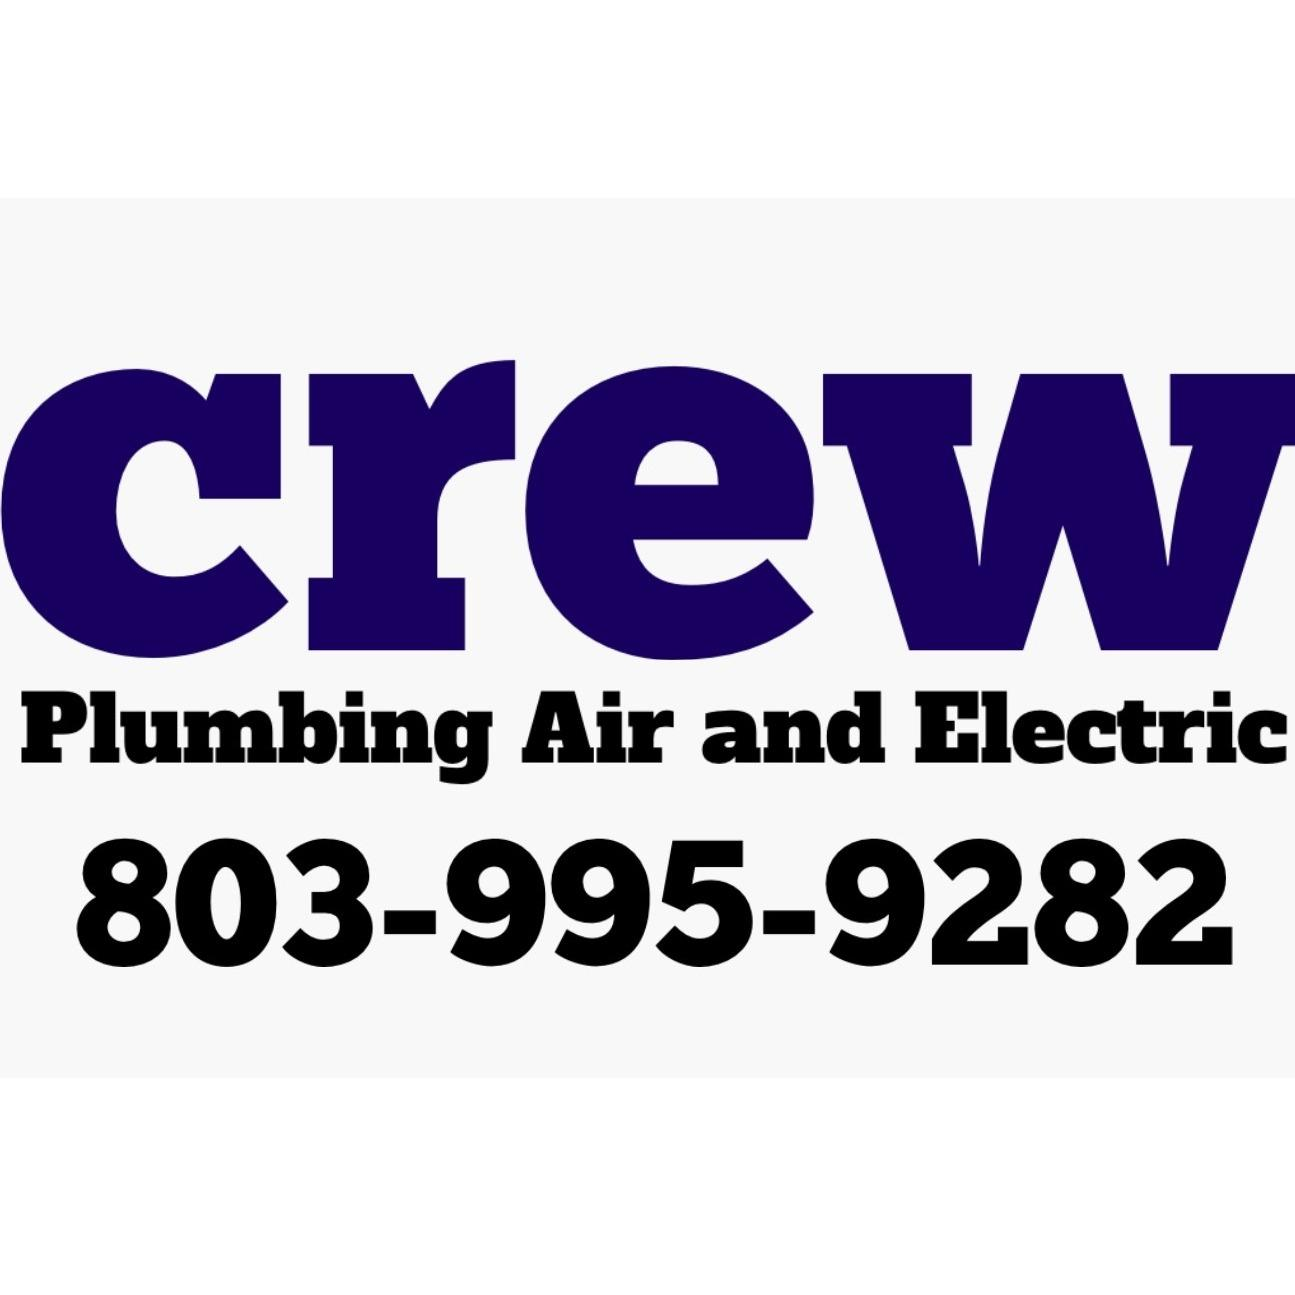 Crew Plumbing Air and Electric